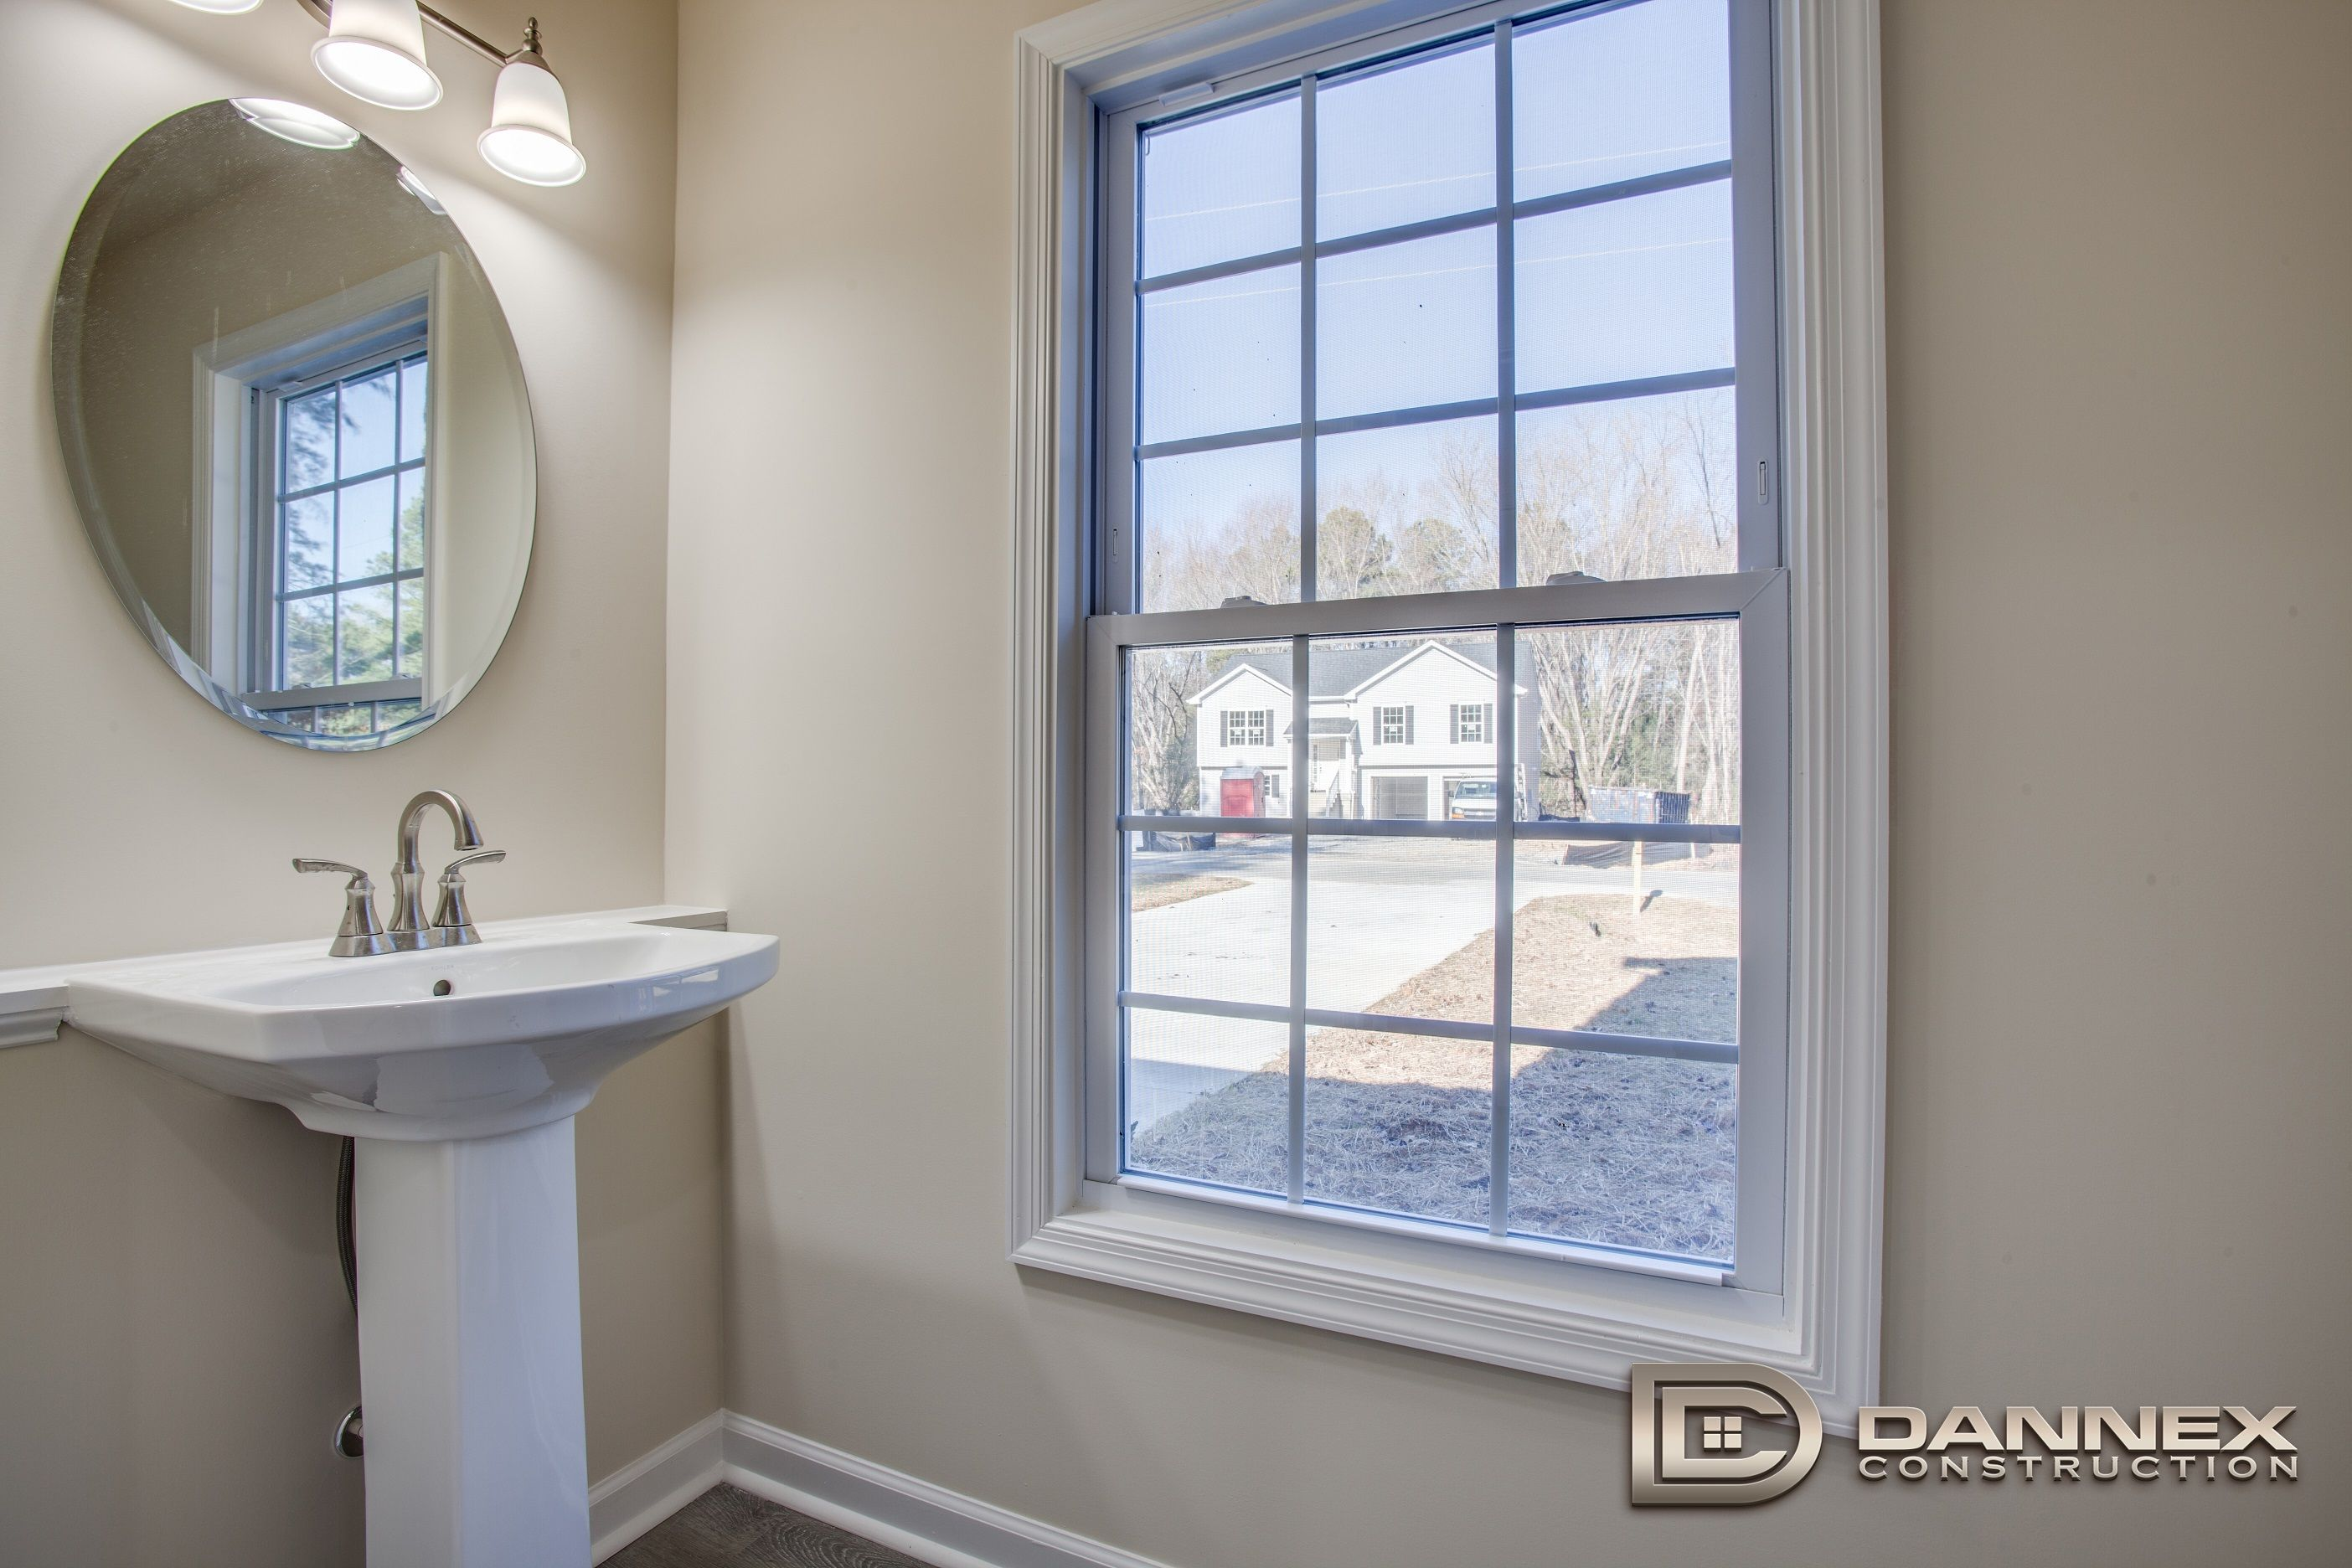 Bathroom featured in the Brewer By Dannex Construction in Washington, VA